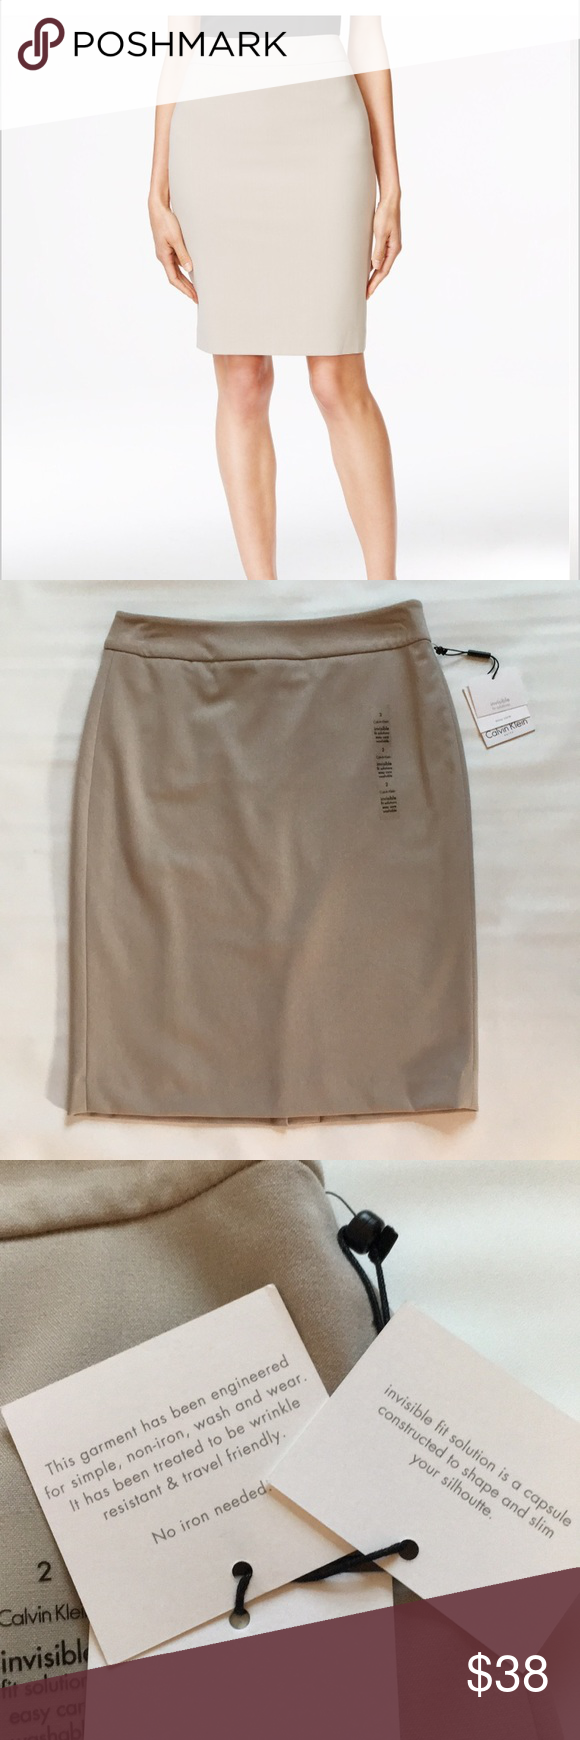 "8927740036 Calvin Klein ""invisible fit solution"" pencil skirt New with tags on! Calvin  Klein Skirts Pencil"